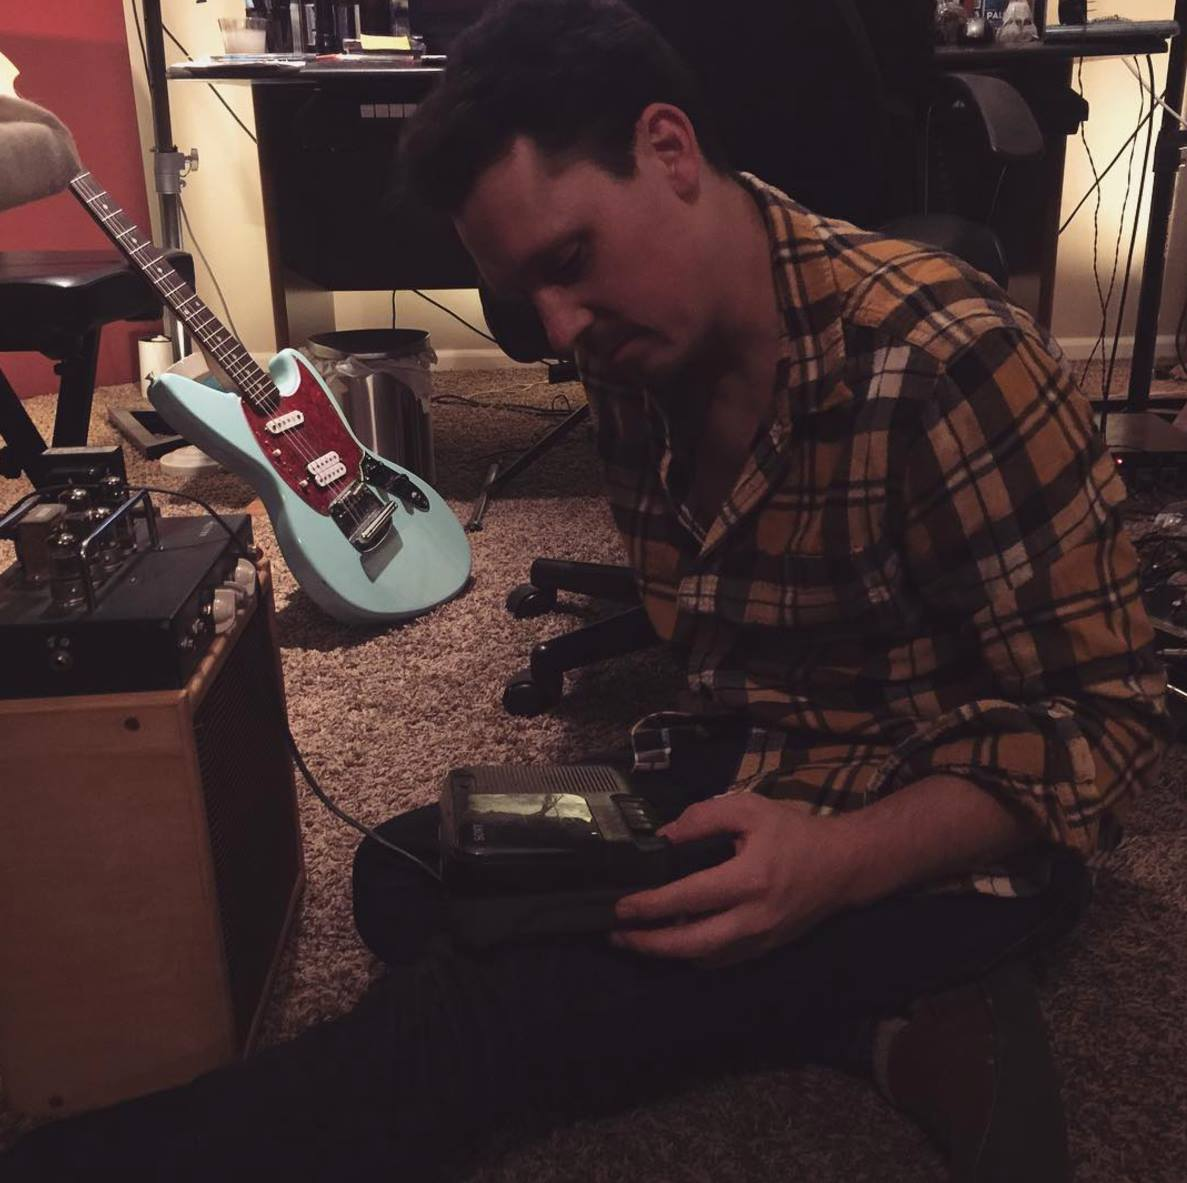 07.28.2016 Zach holds his childhood cassette player as we push comeuppance demo from phone to pickups to amp and onto an old cassette.